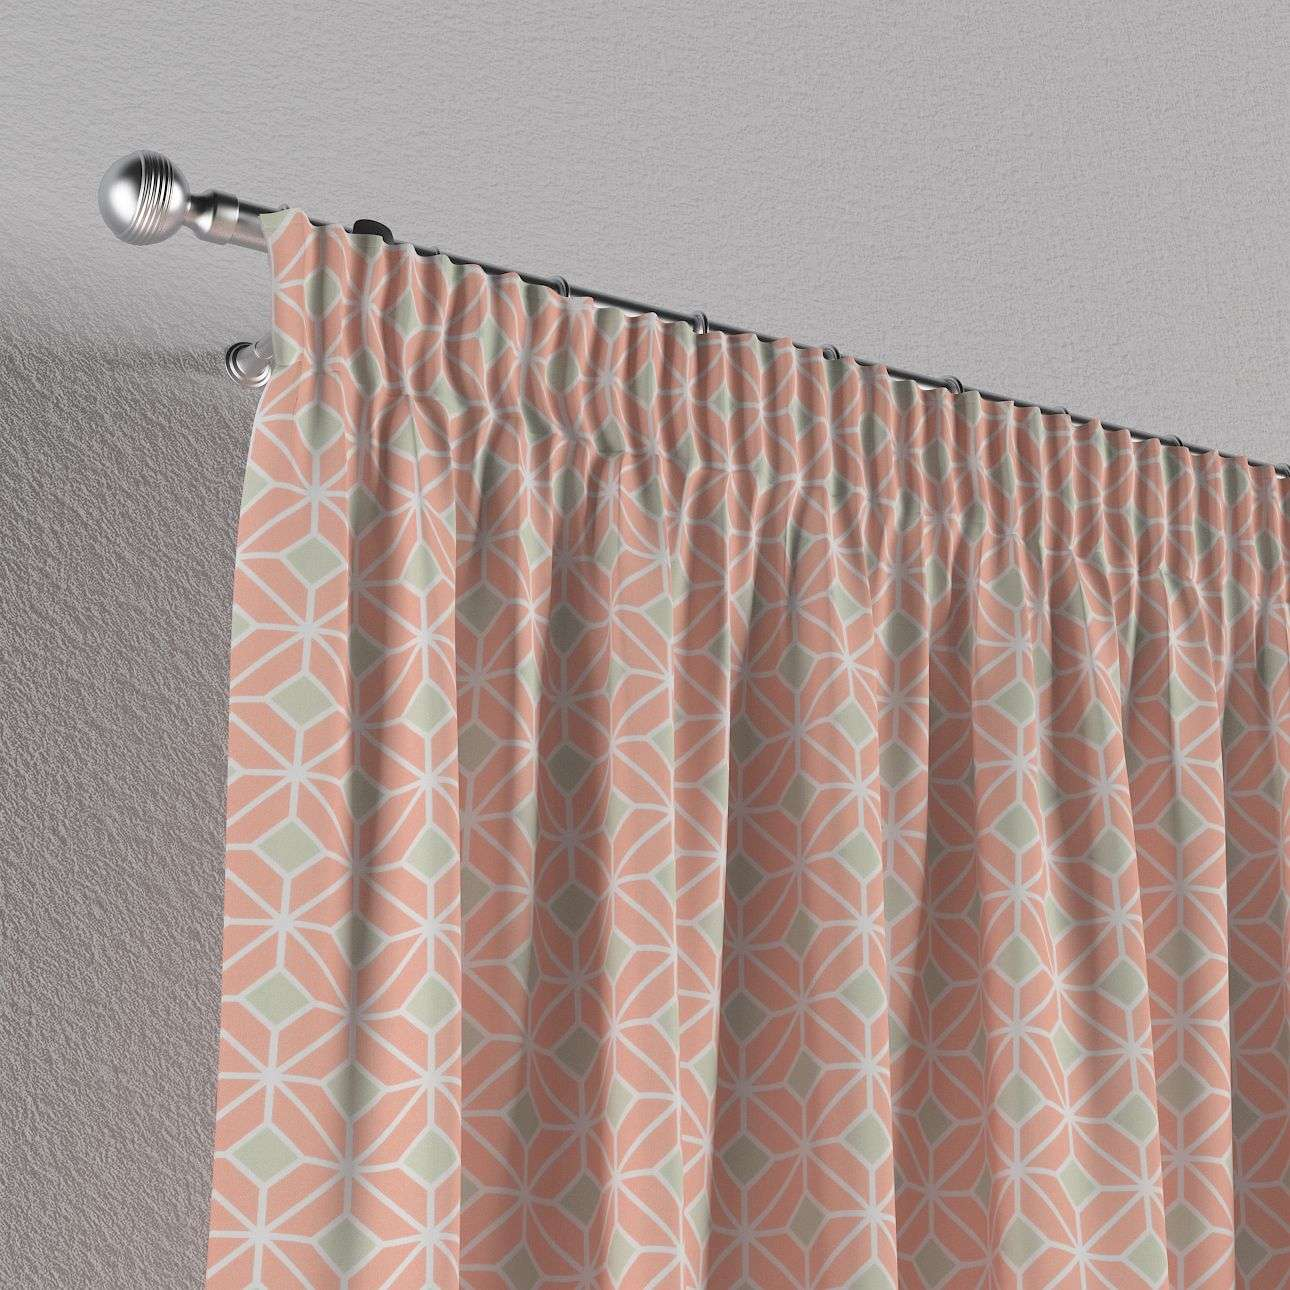 Pencil pleat curtains 130 x 260 cm (51 x 102 inch) in collection Geometric, fabric: 141-48